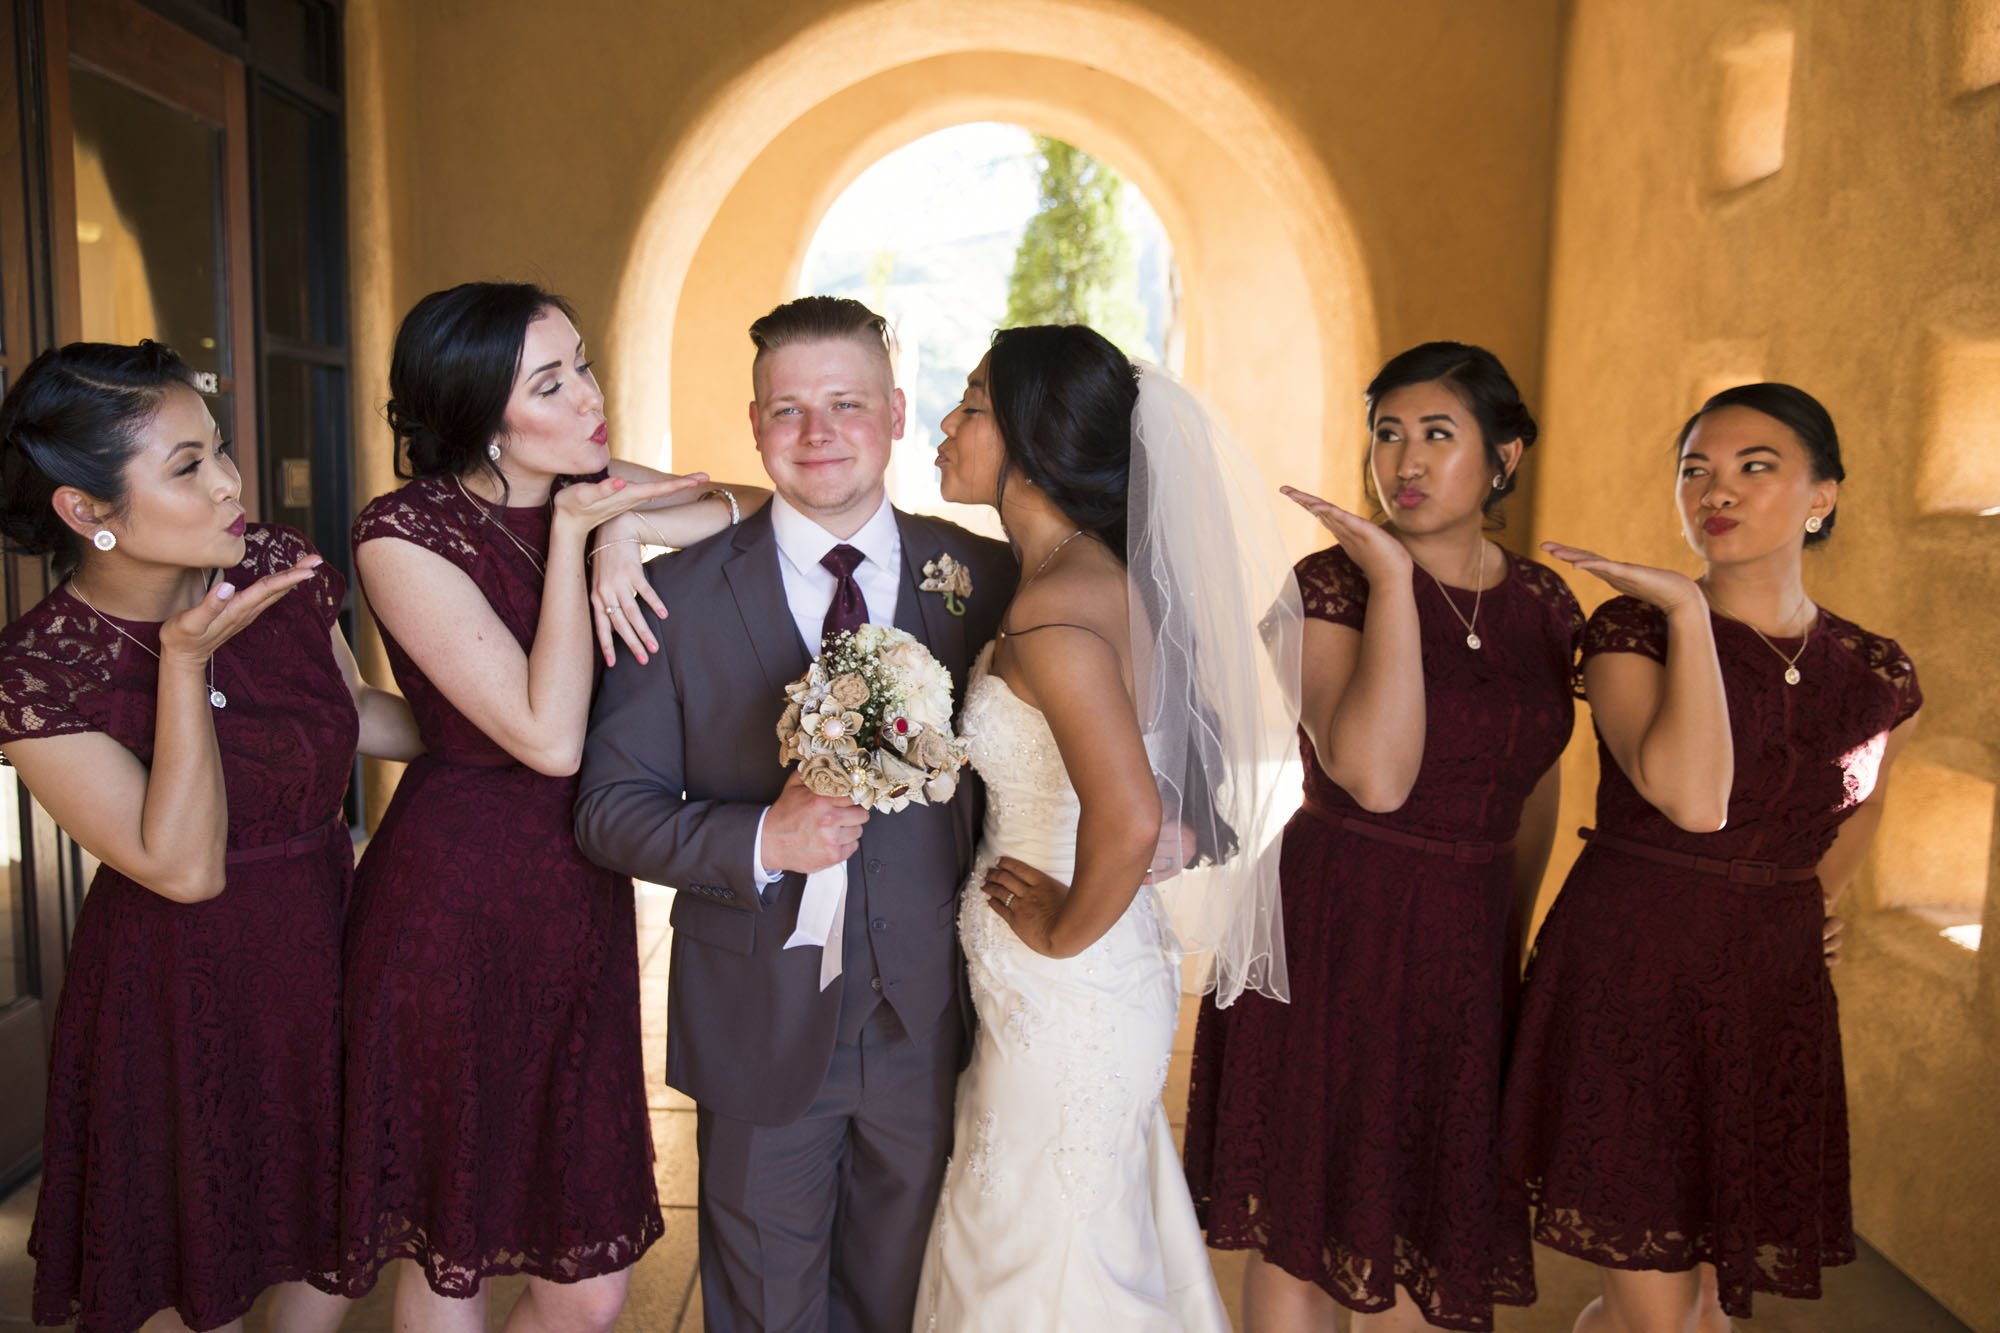 Kiss the groom! Funny wedding party